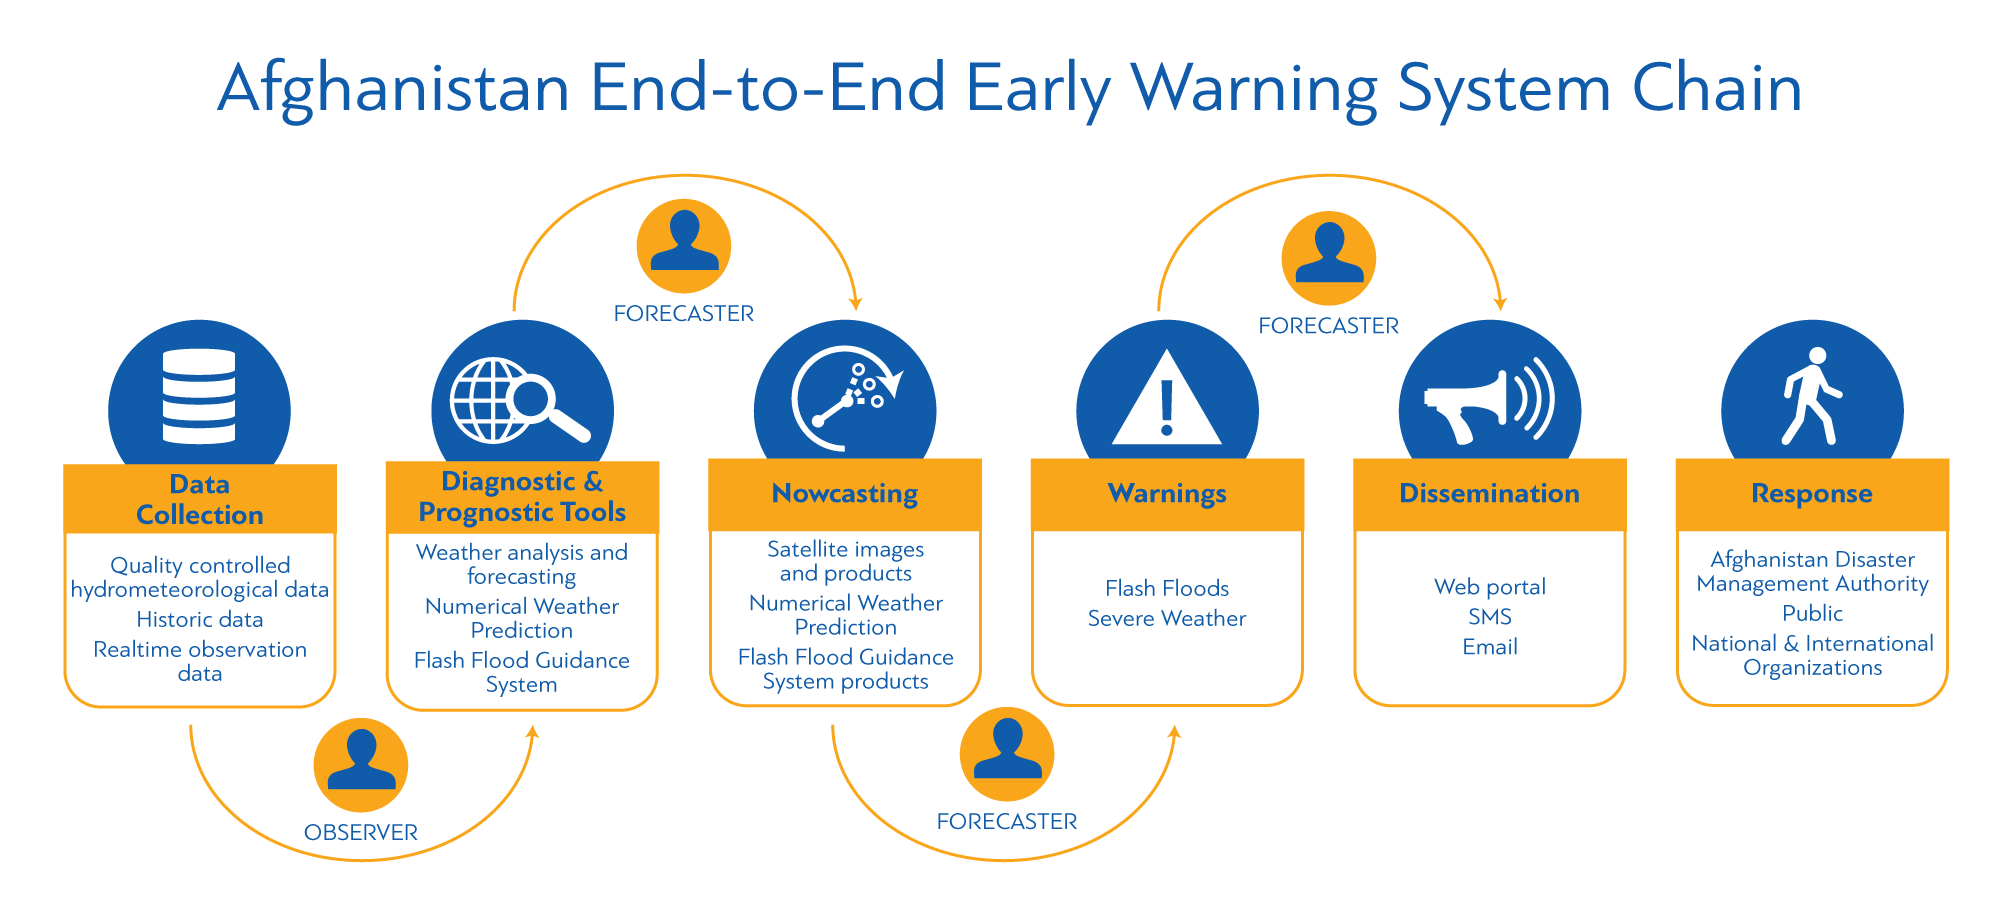 Main Components of the Afghanistan End-to-End Early Warning System Chain